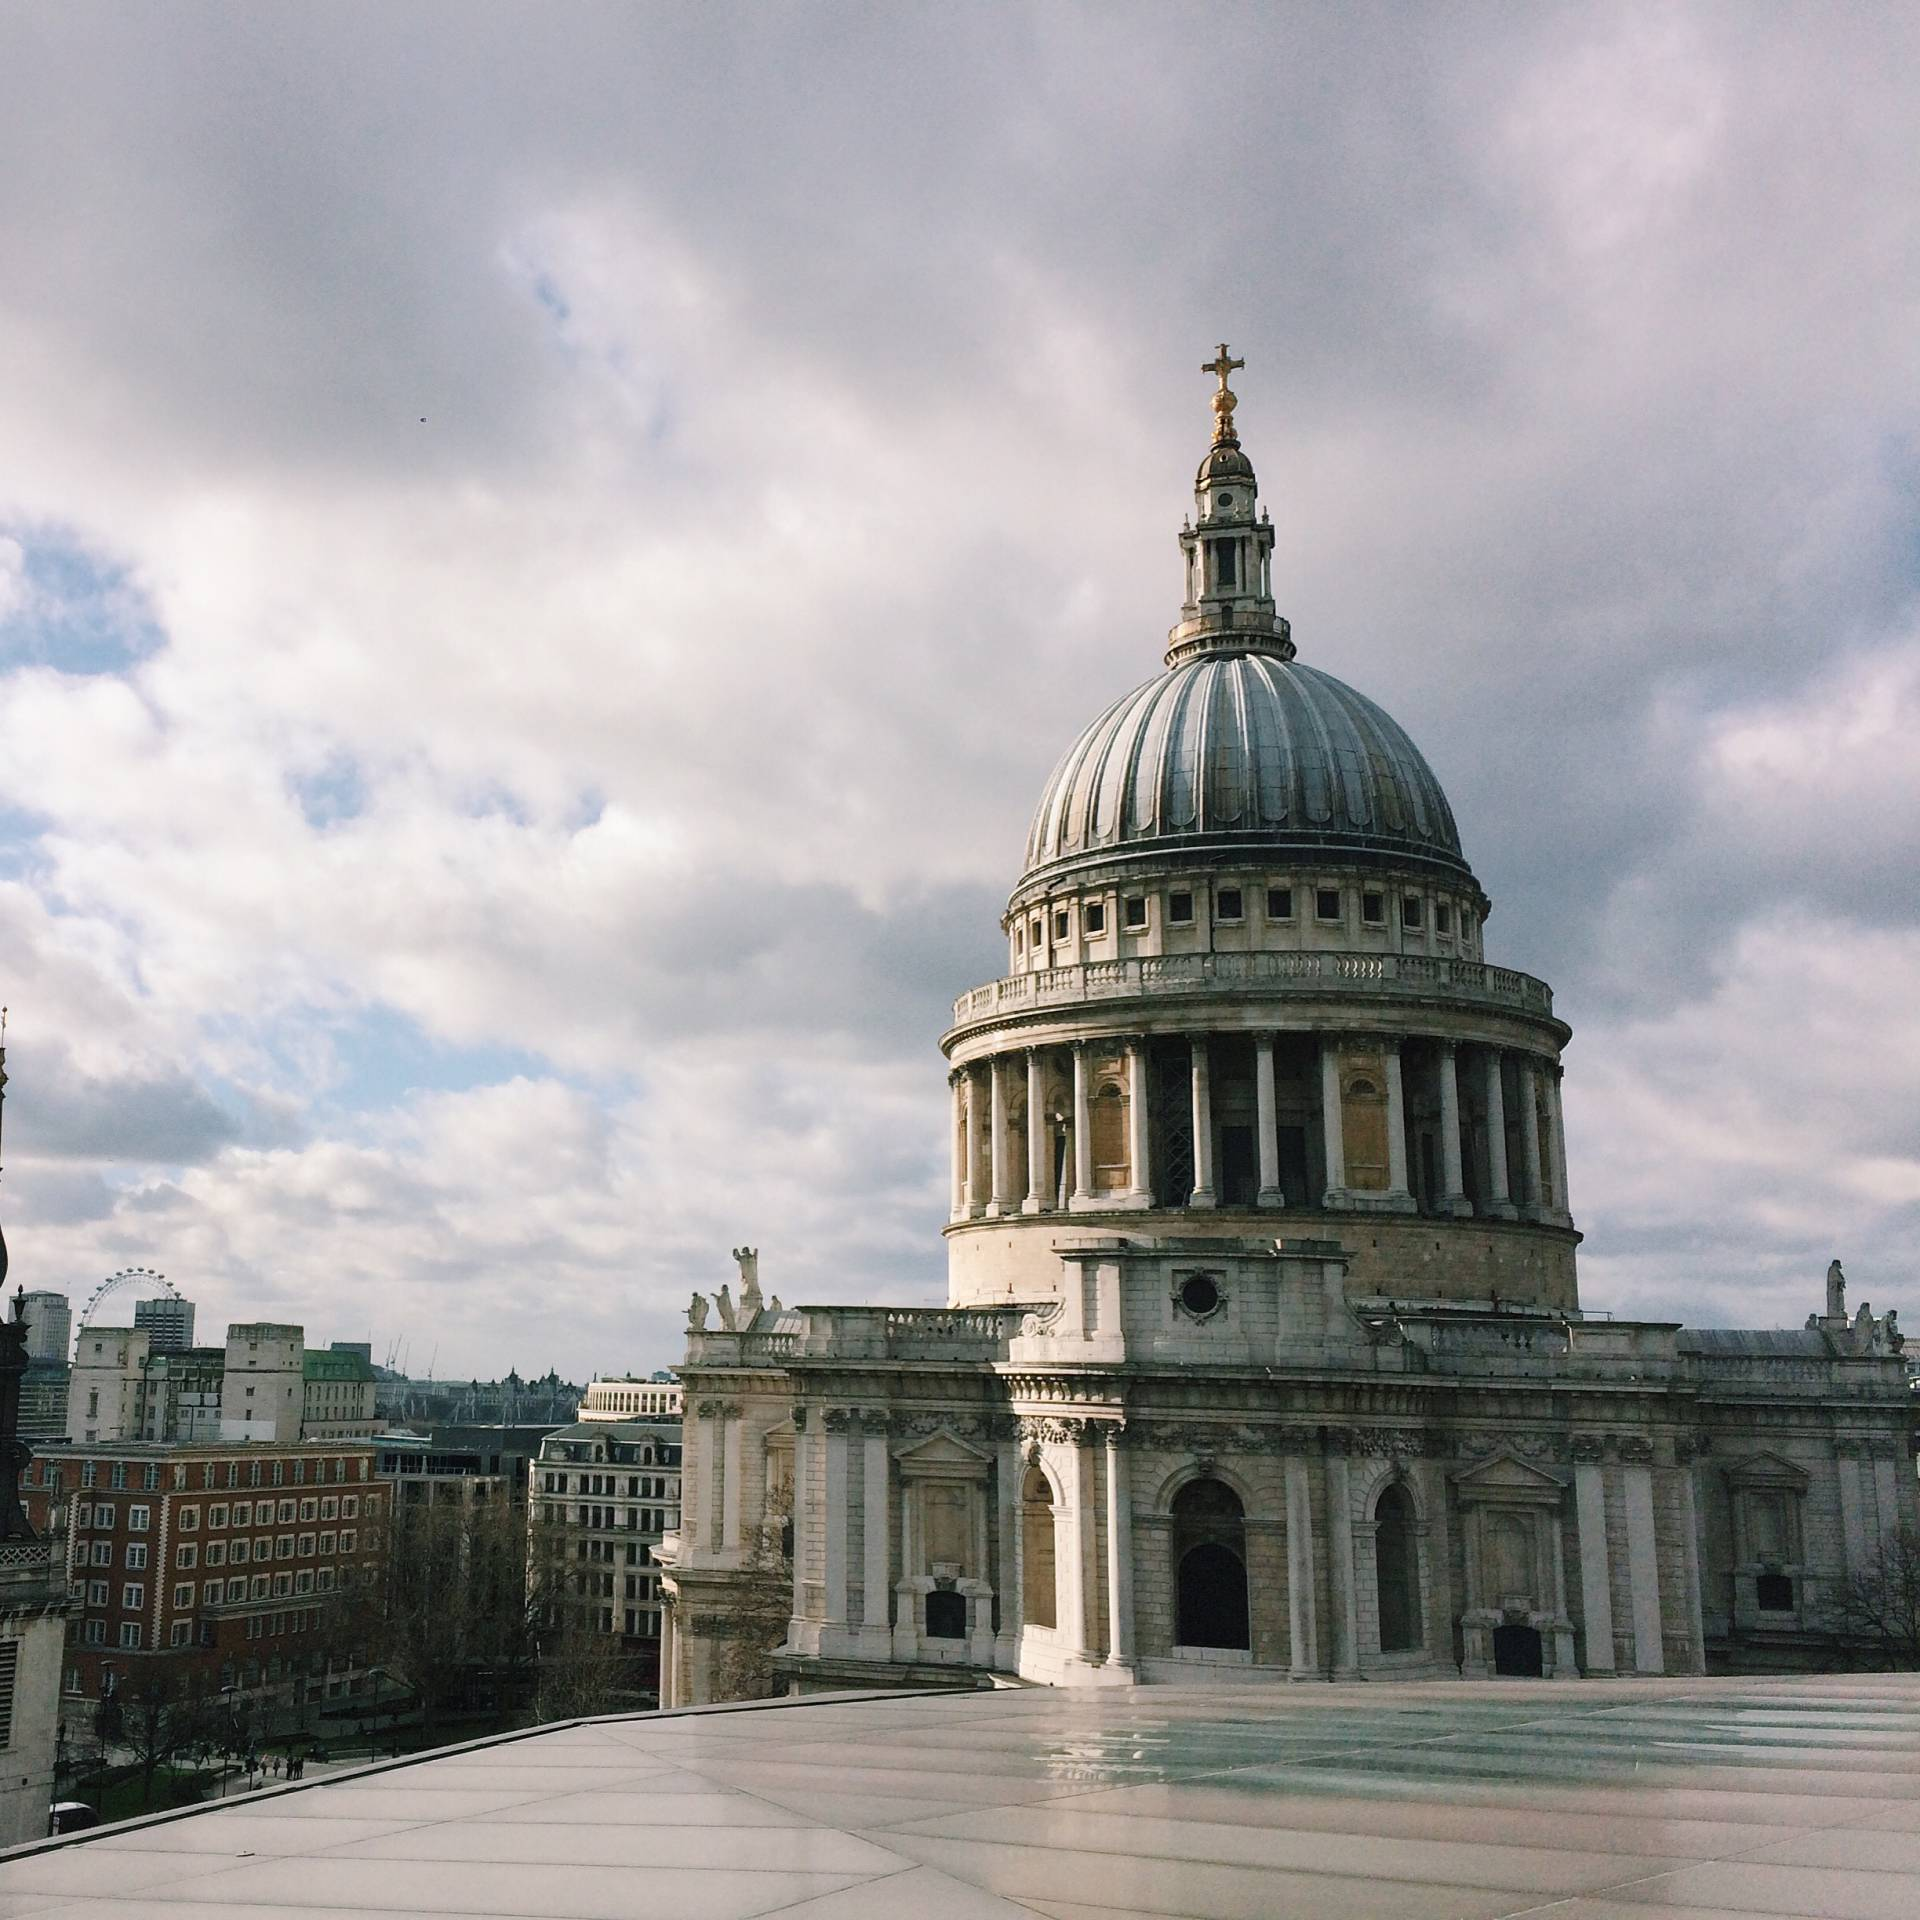 Madison rooftop bar – rooftop of One New Change shopping complex, EC4M 9AD St. Paul's tube